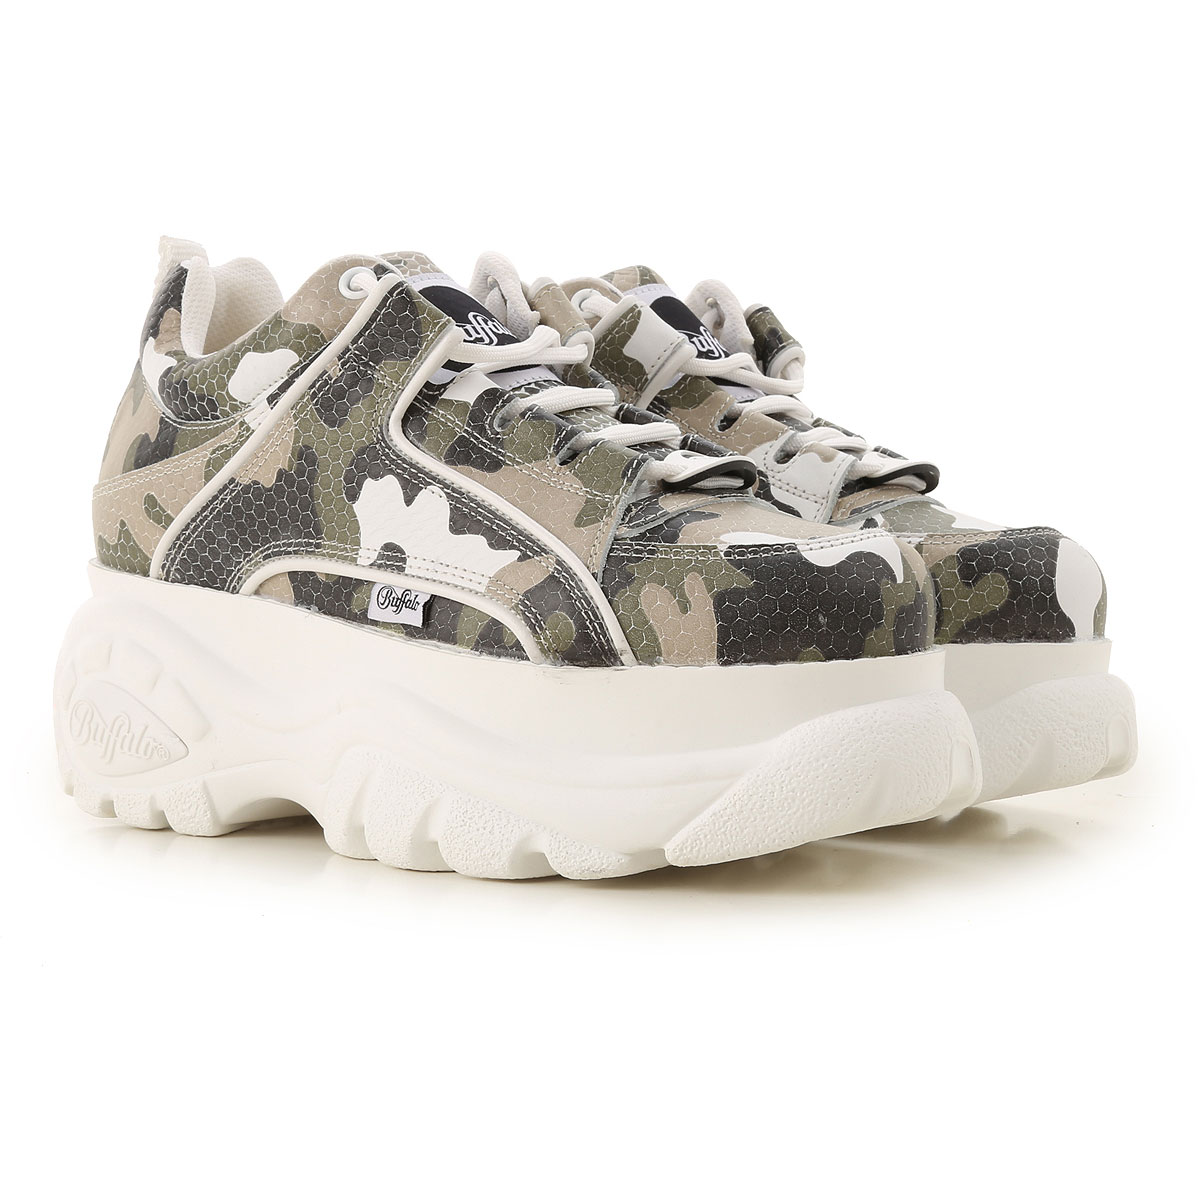 Buffalo Sneakers for Women On Sale in Outlet, camouflage, Leather, 2019, UK 6 - EU 40 - US 9 UK 7 - EU 41 - US 10